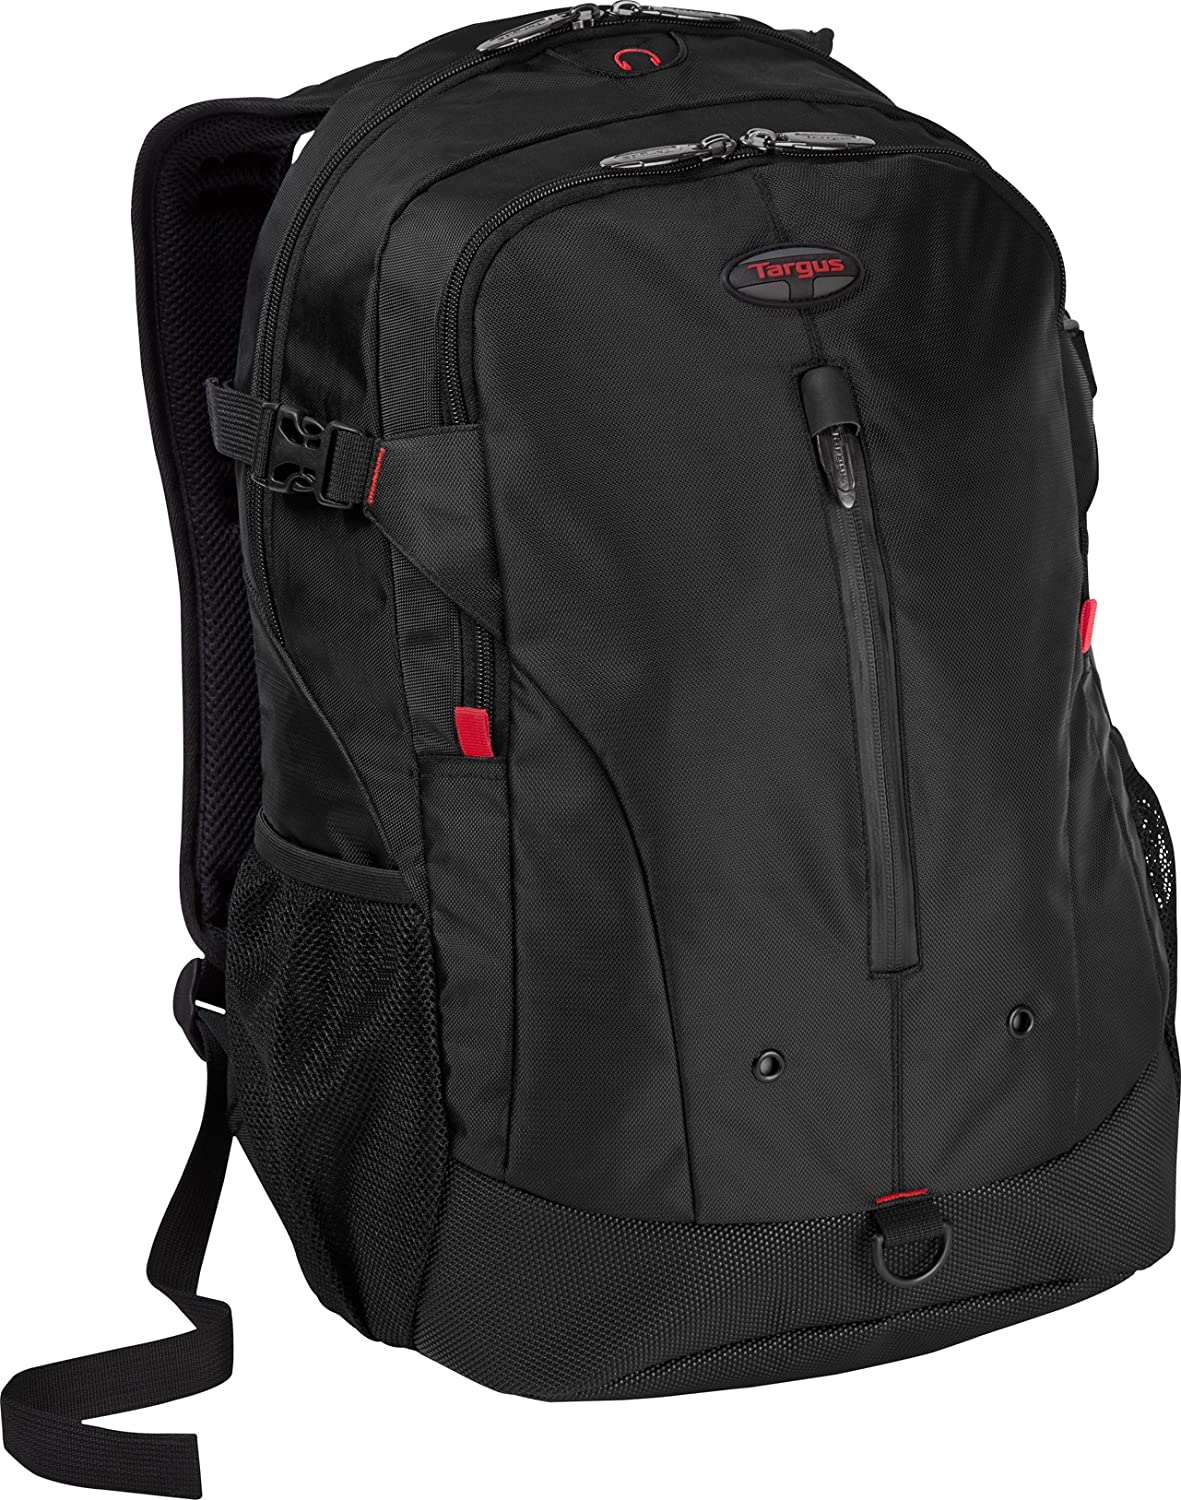 Targus Terra Backpack 16-Inch, Black (TSB226CA)